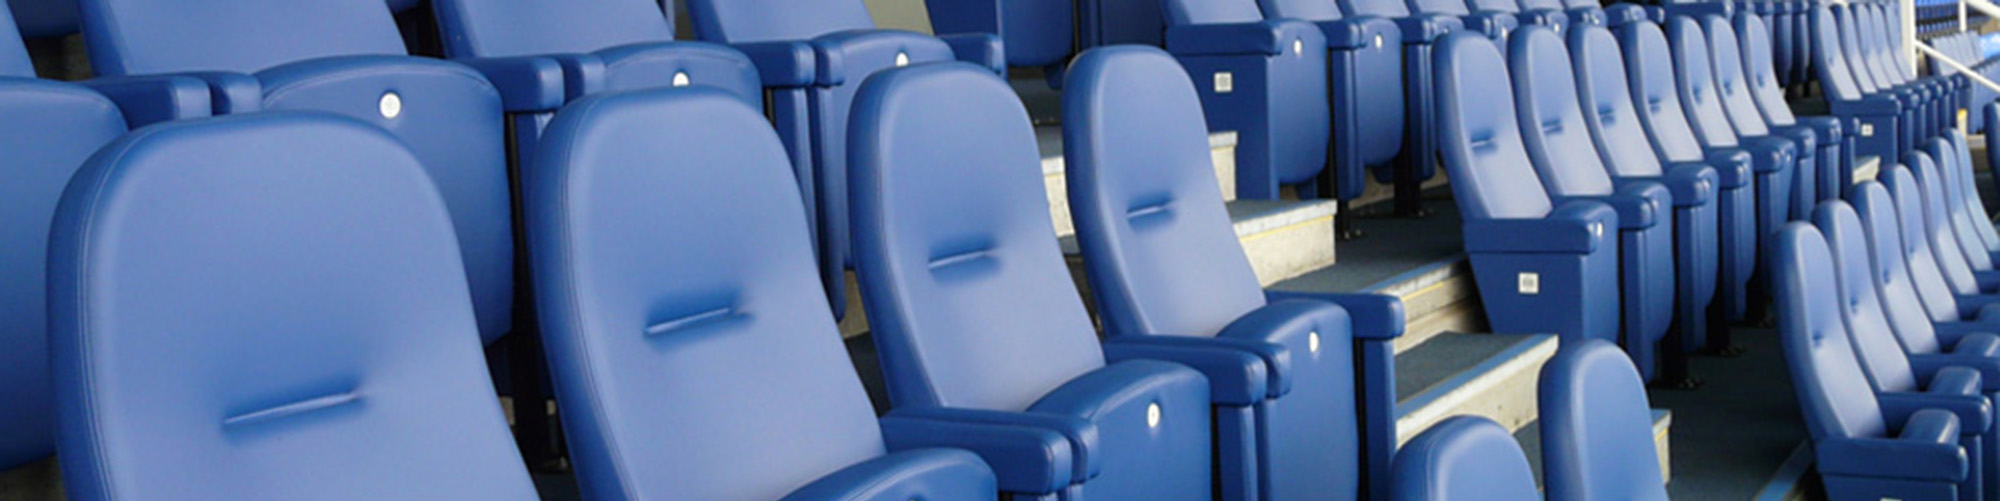 Football stadium with Evertaut Olympian luxury stadium seating upholstered in blue vinyl